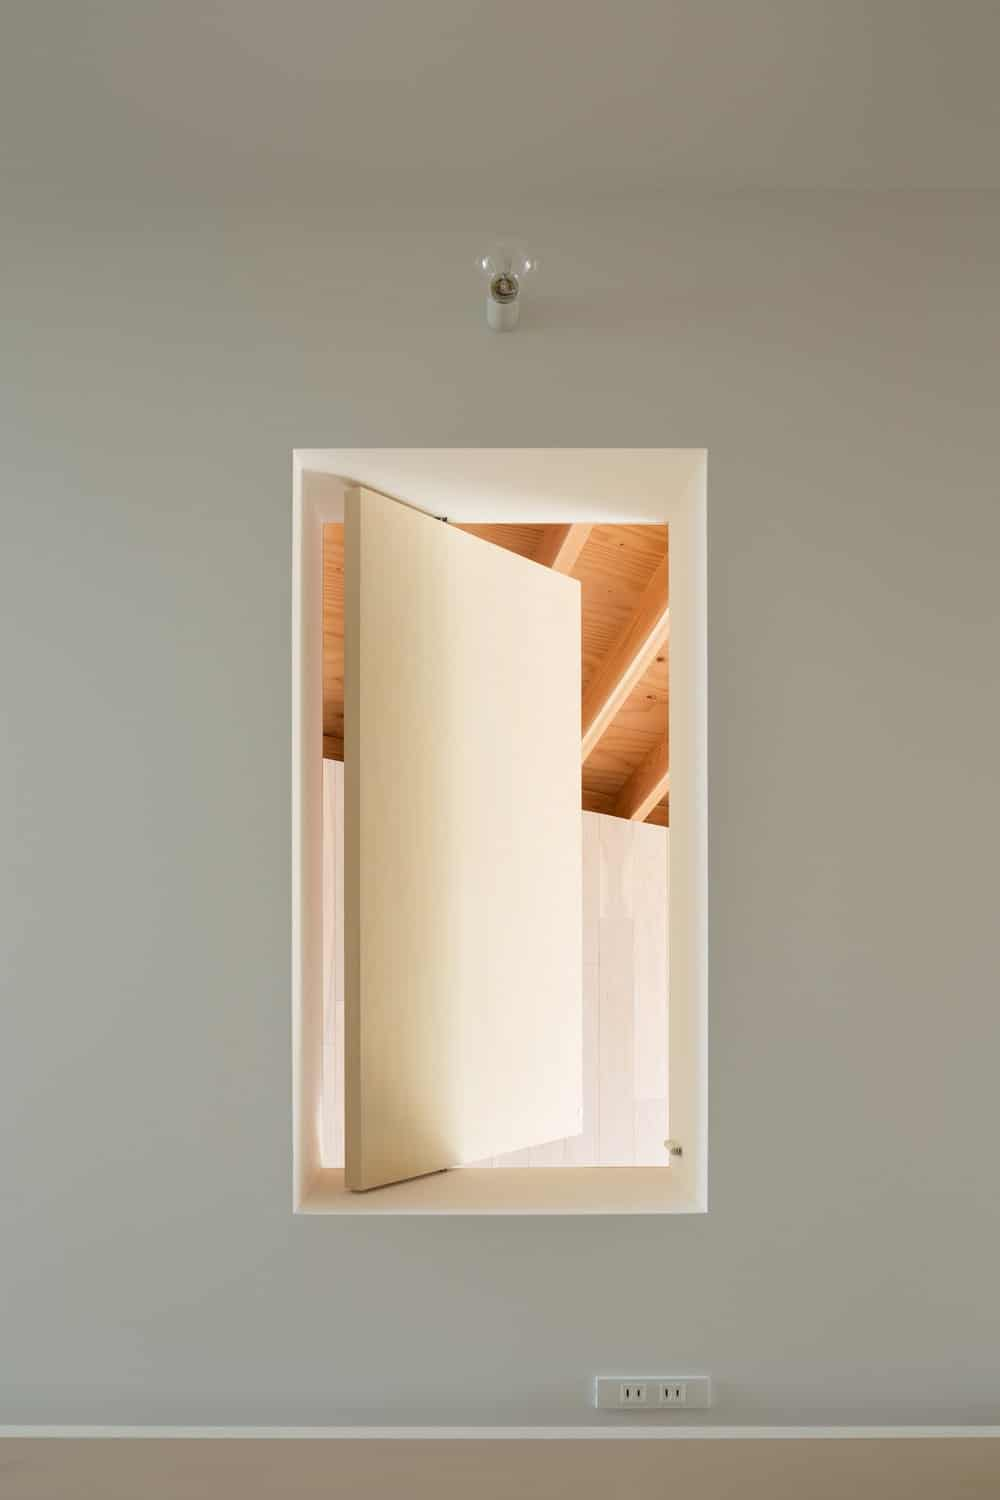 This is a close look at a window inside the house with a consistent beige tone.